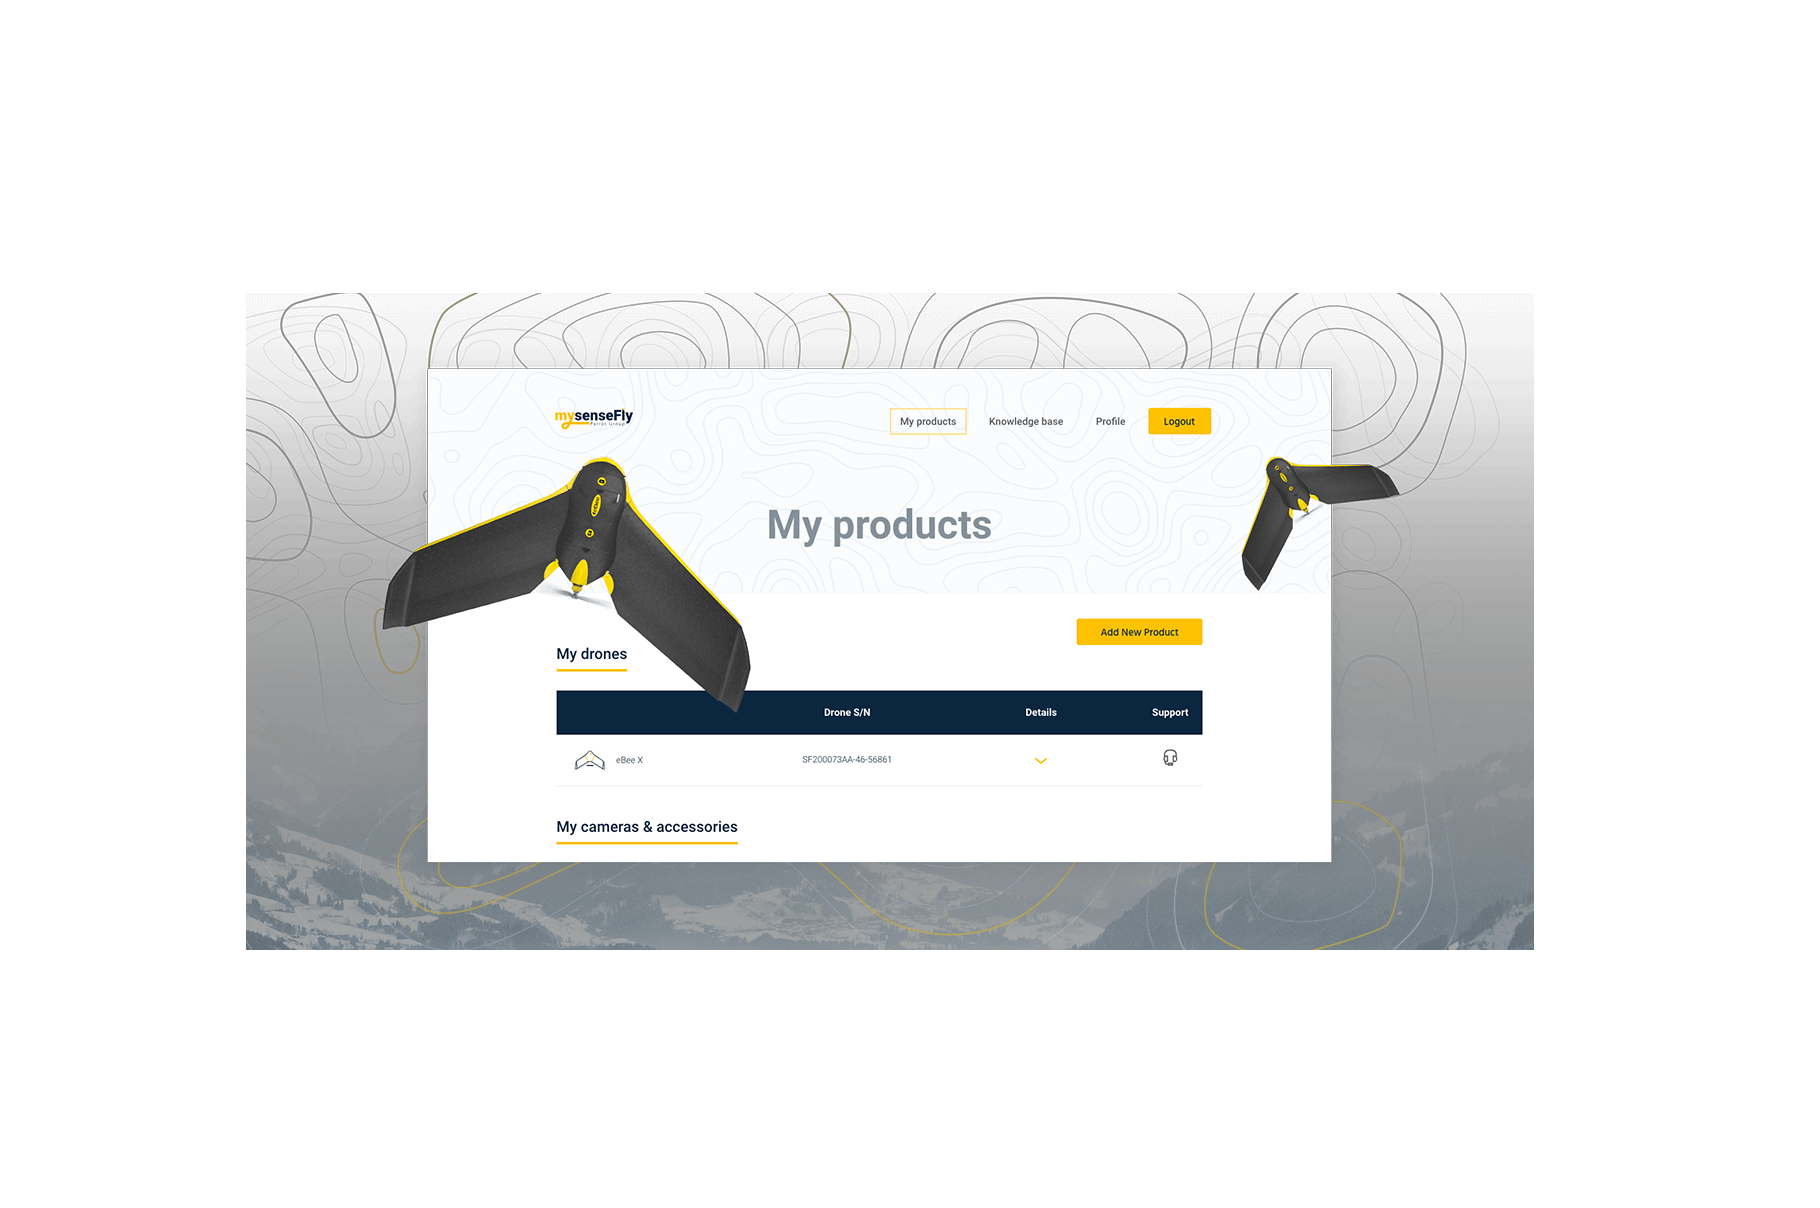 senseFly - Vue.js application developed by Netguru